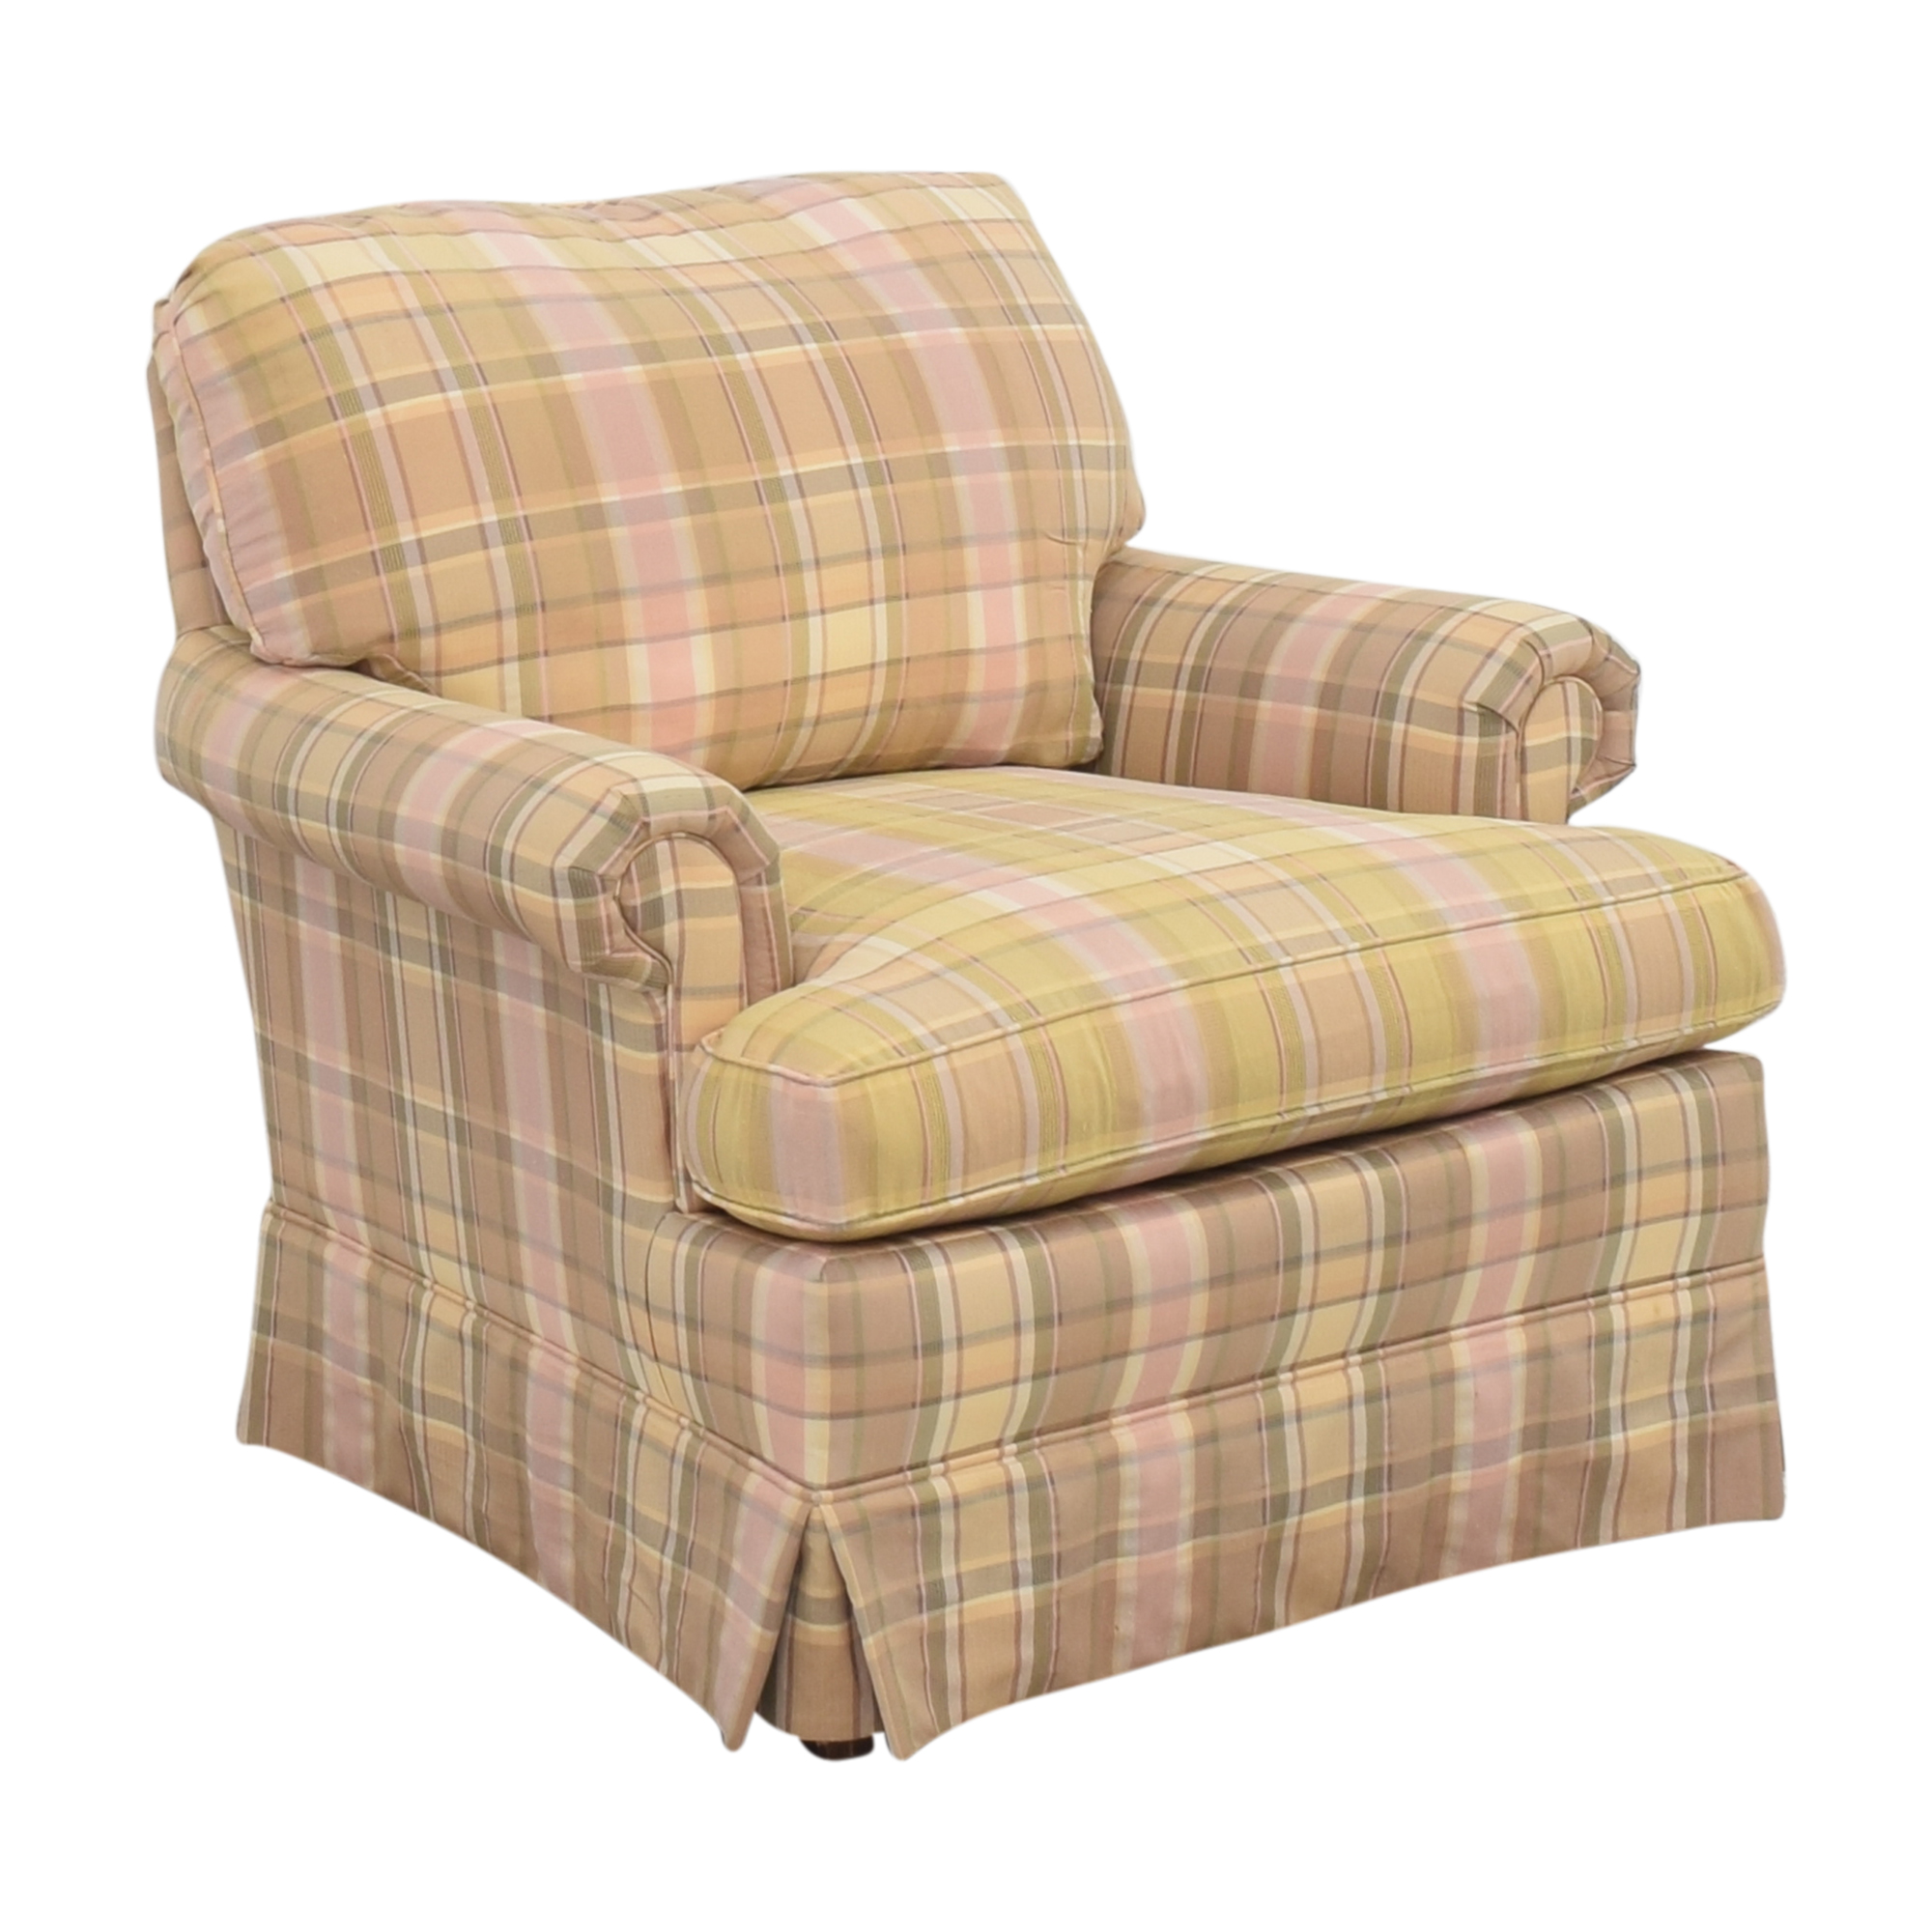 shop Thomasville Skirted Plaid Chair Thomasville Accent Chairs